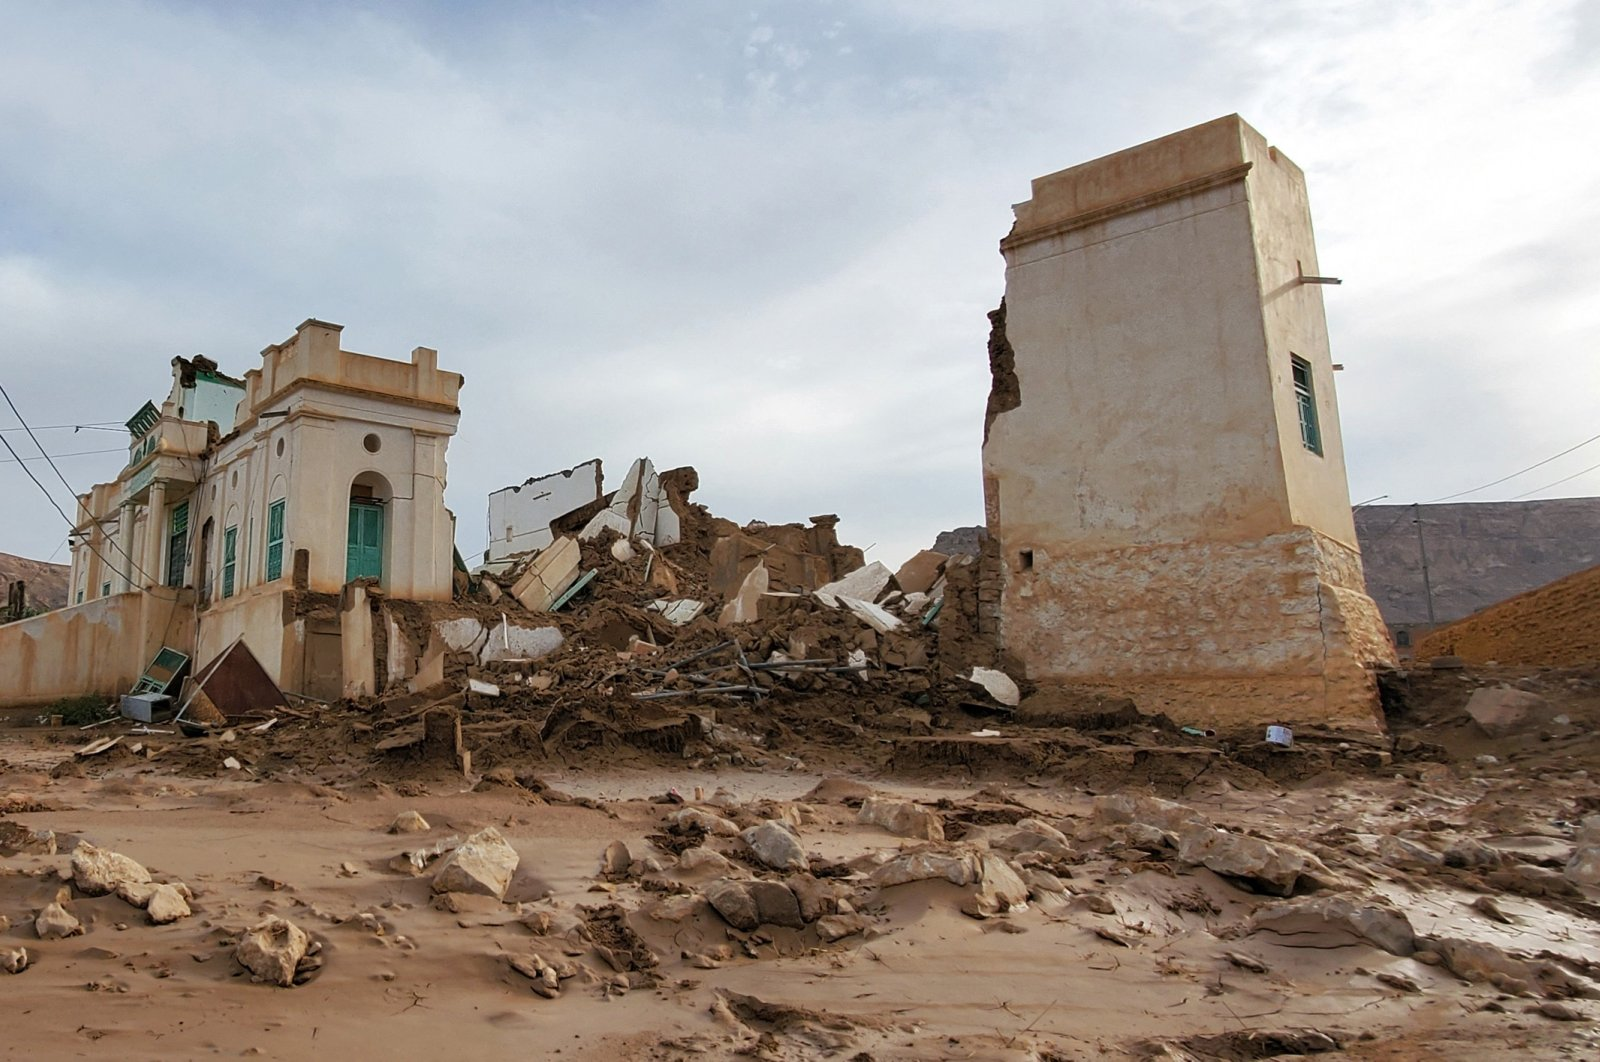 A collapsed building seen after flash floods in Tarim, Hadramawt province, central Yemen, May 3, 2021. (AFP Photo)